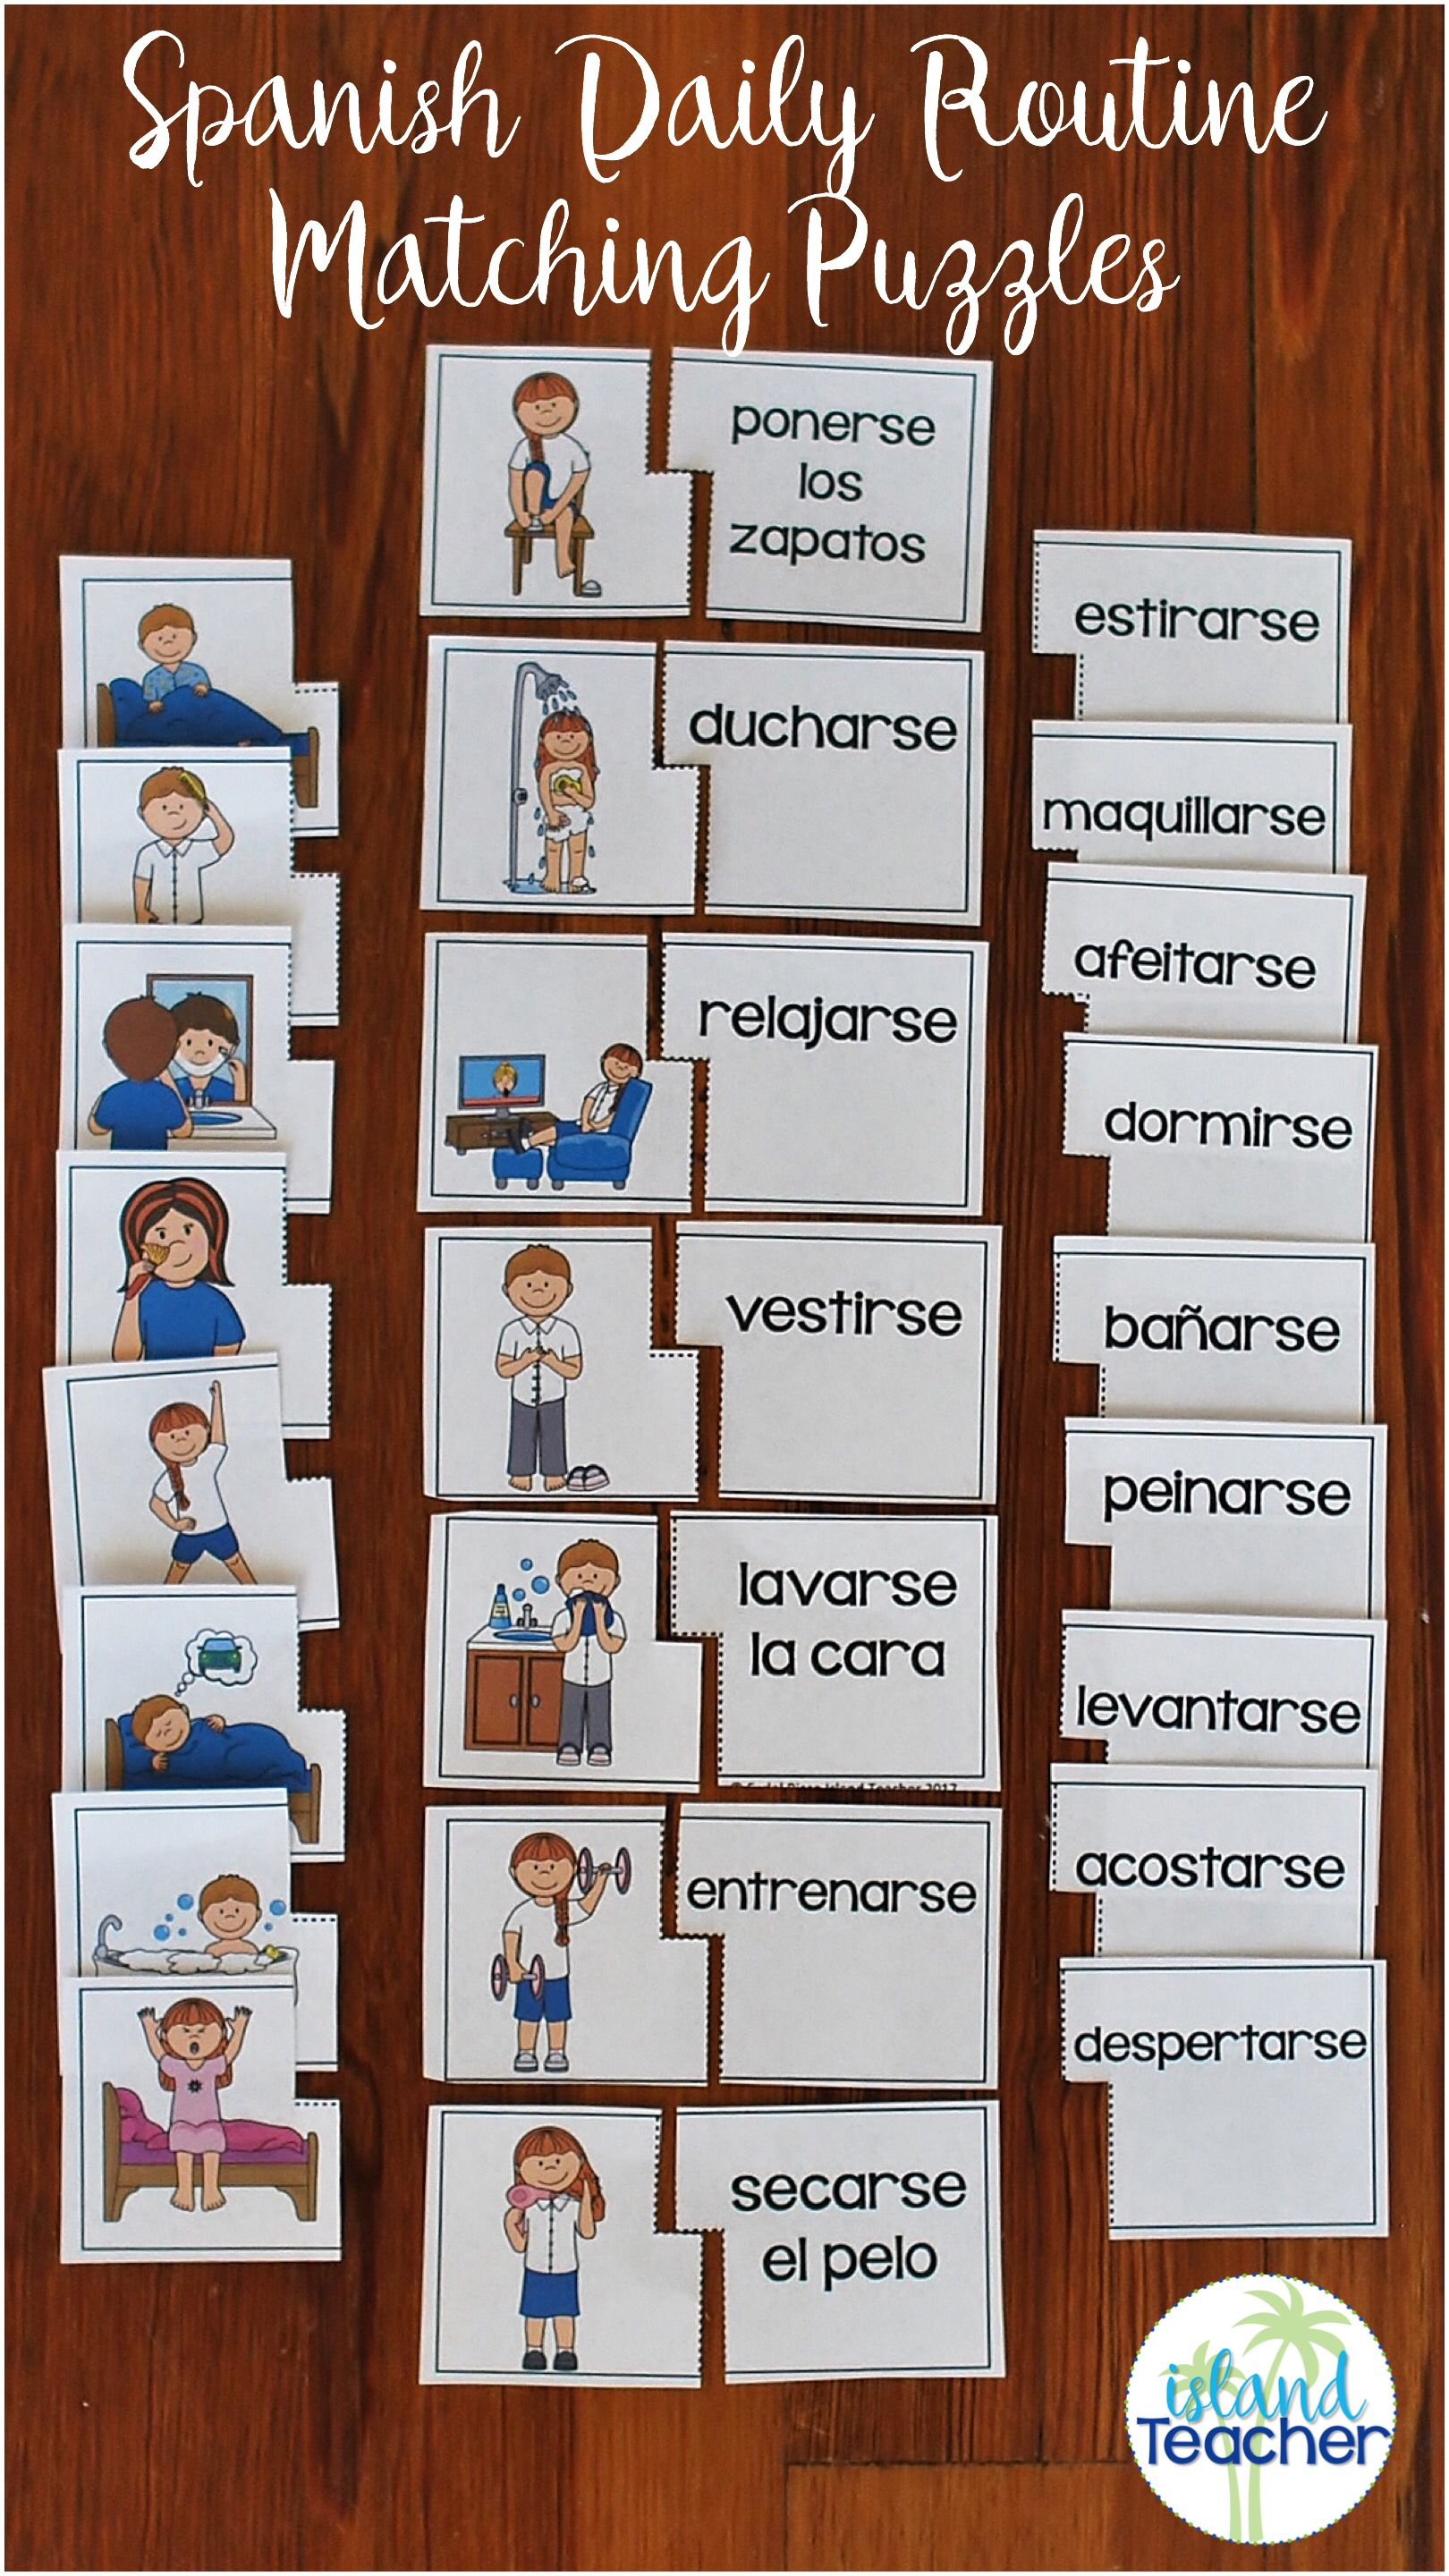 Reflexive Verbs Daily Routine Spanish Worksheet